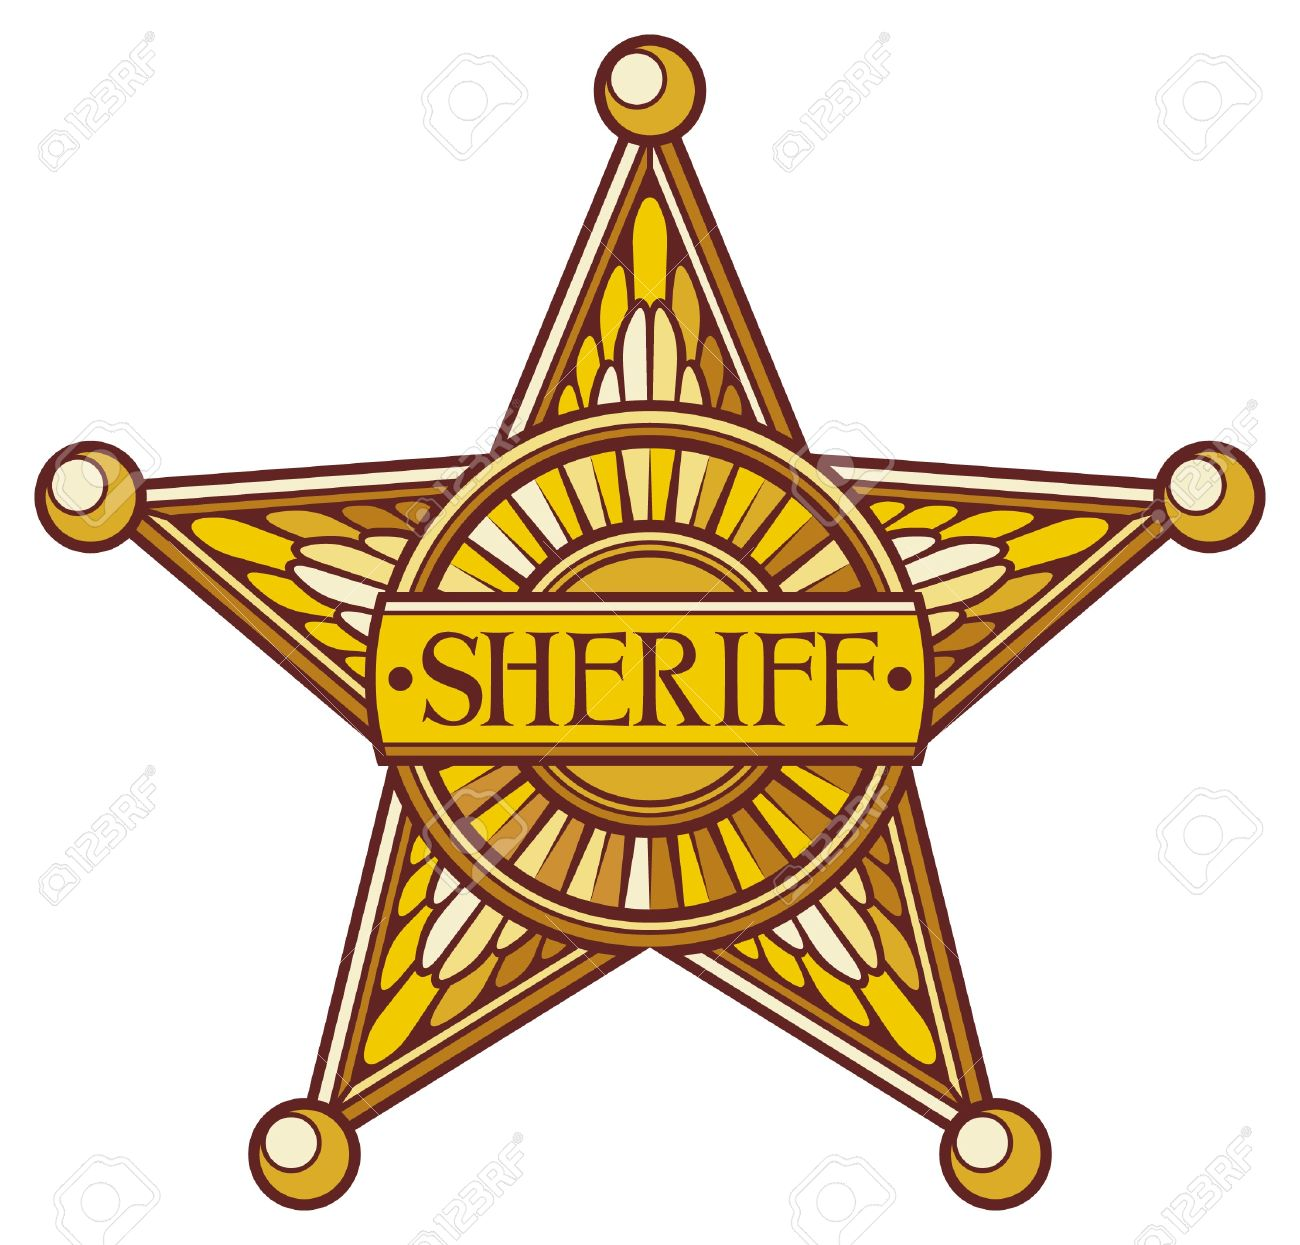 Sheriff S Star Sheriff Badge, Sheriff Shield Royalty Free Cliparts ...